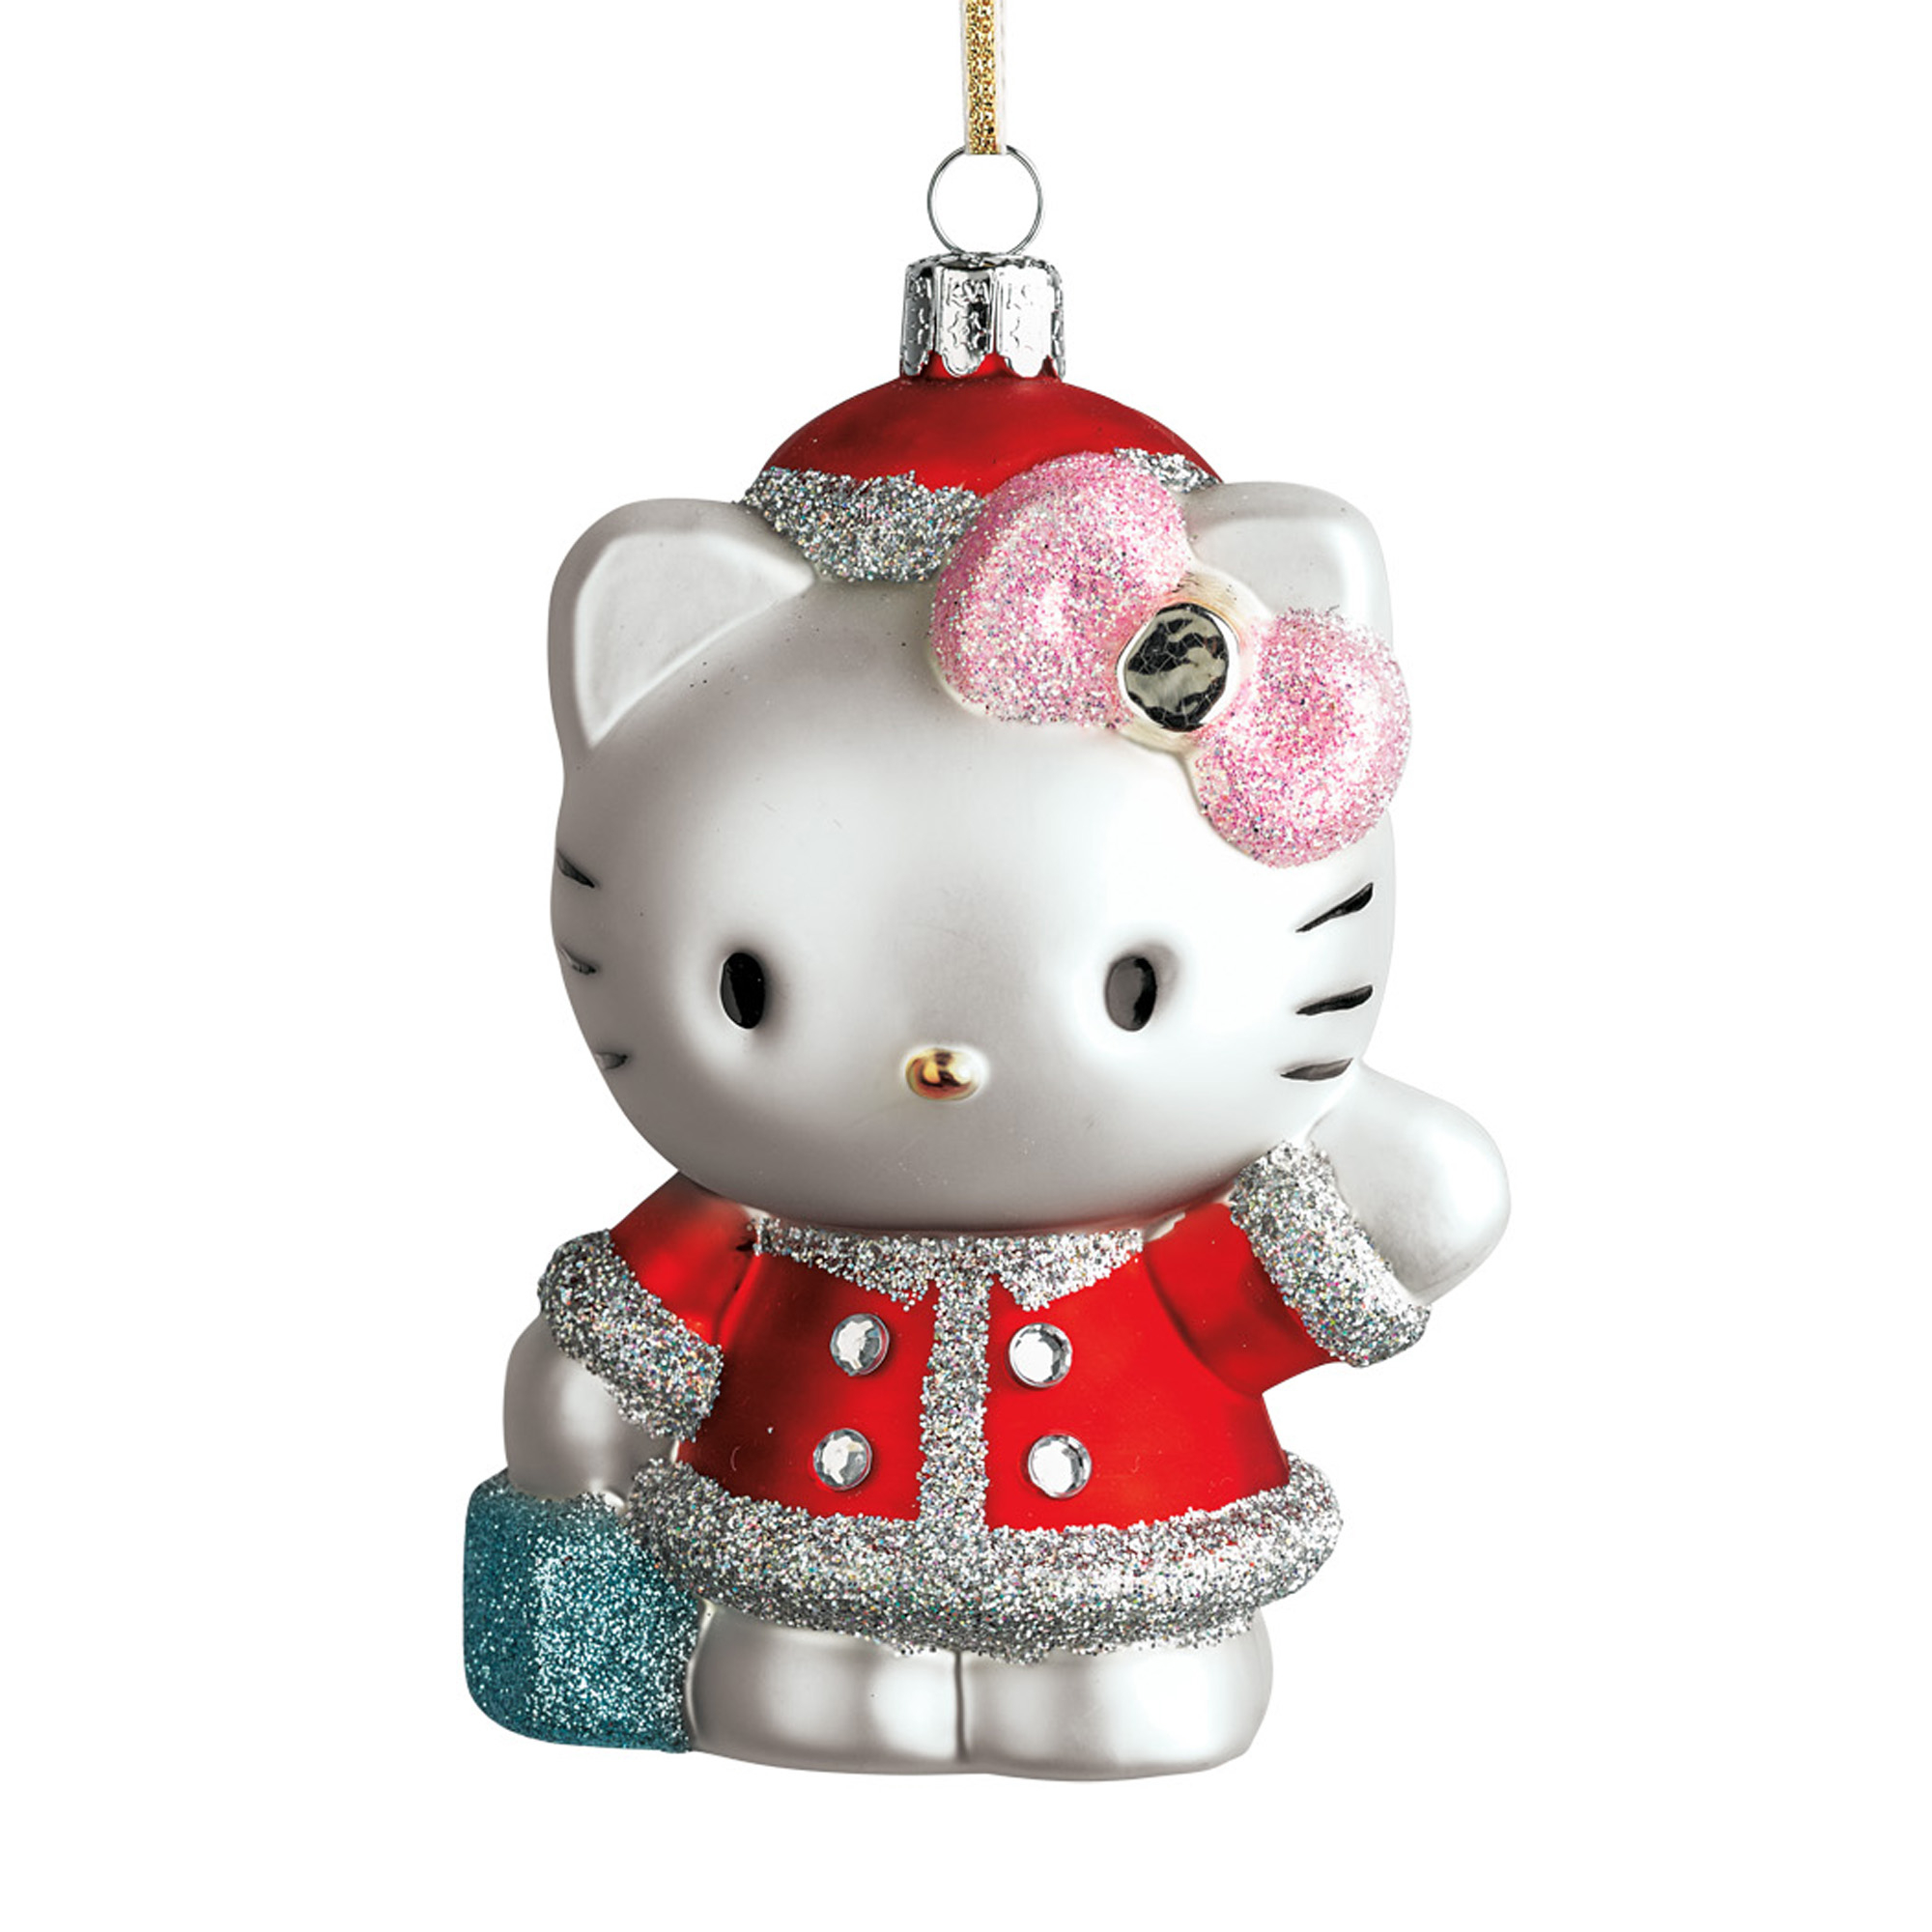 Kitty Christmas Ornaments Home Garden Improvement Design